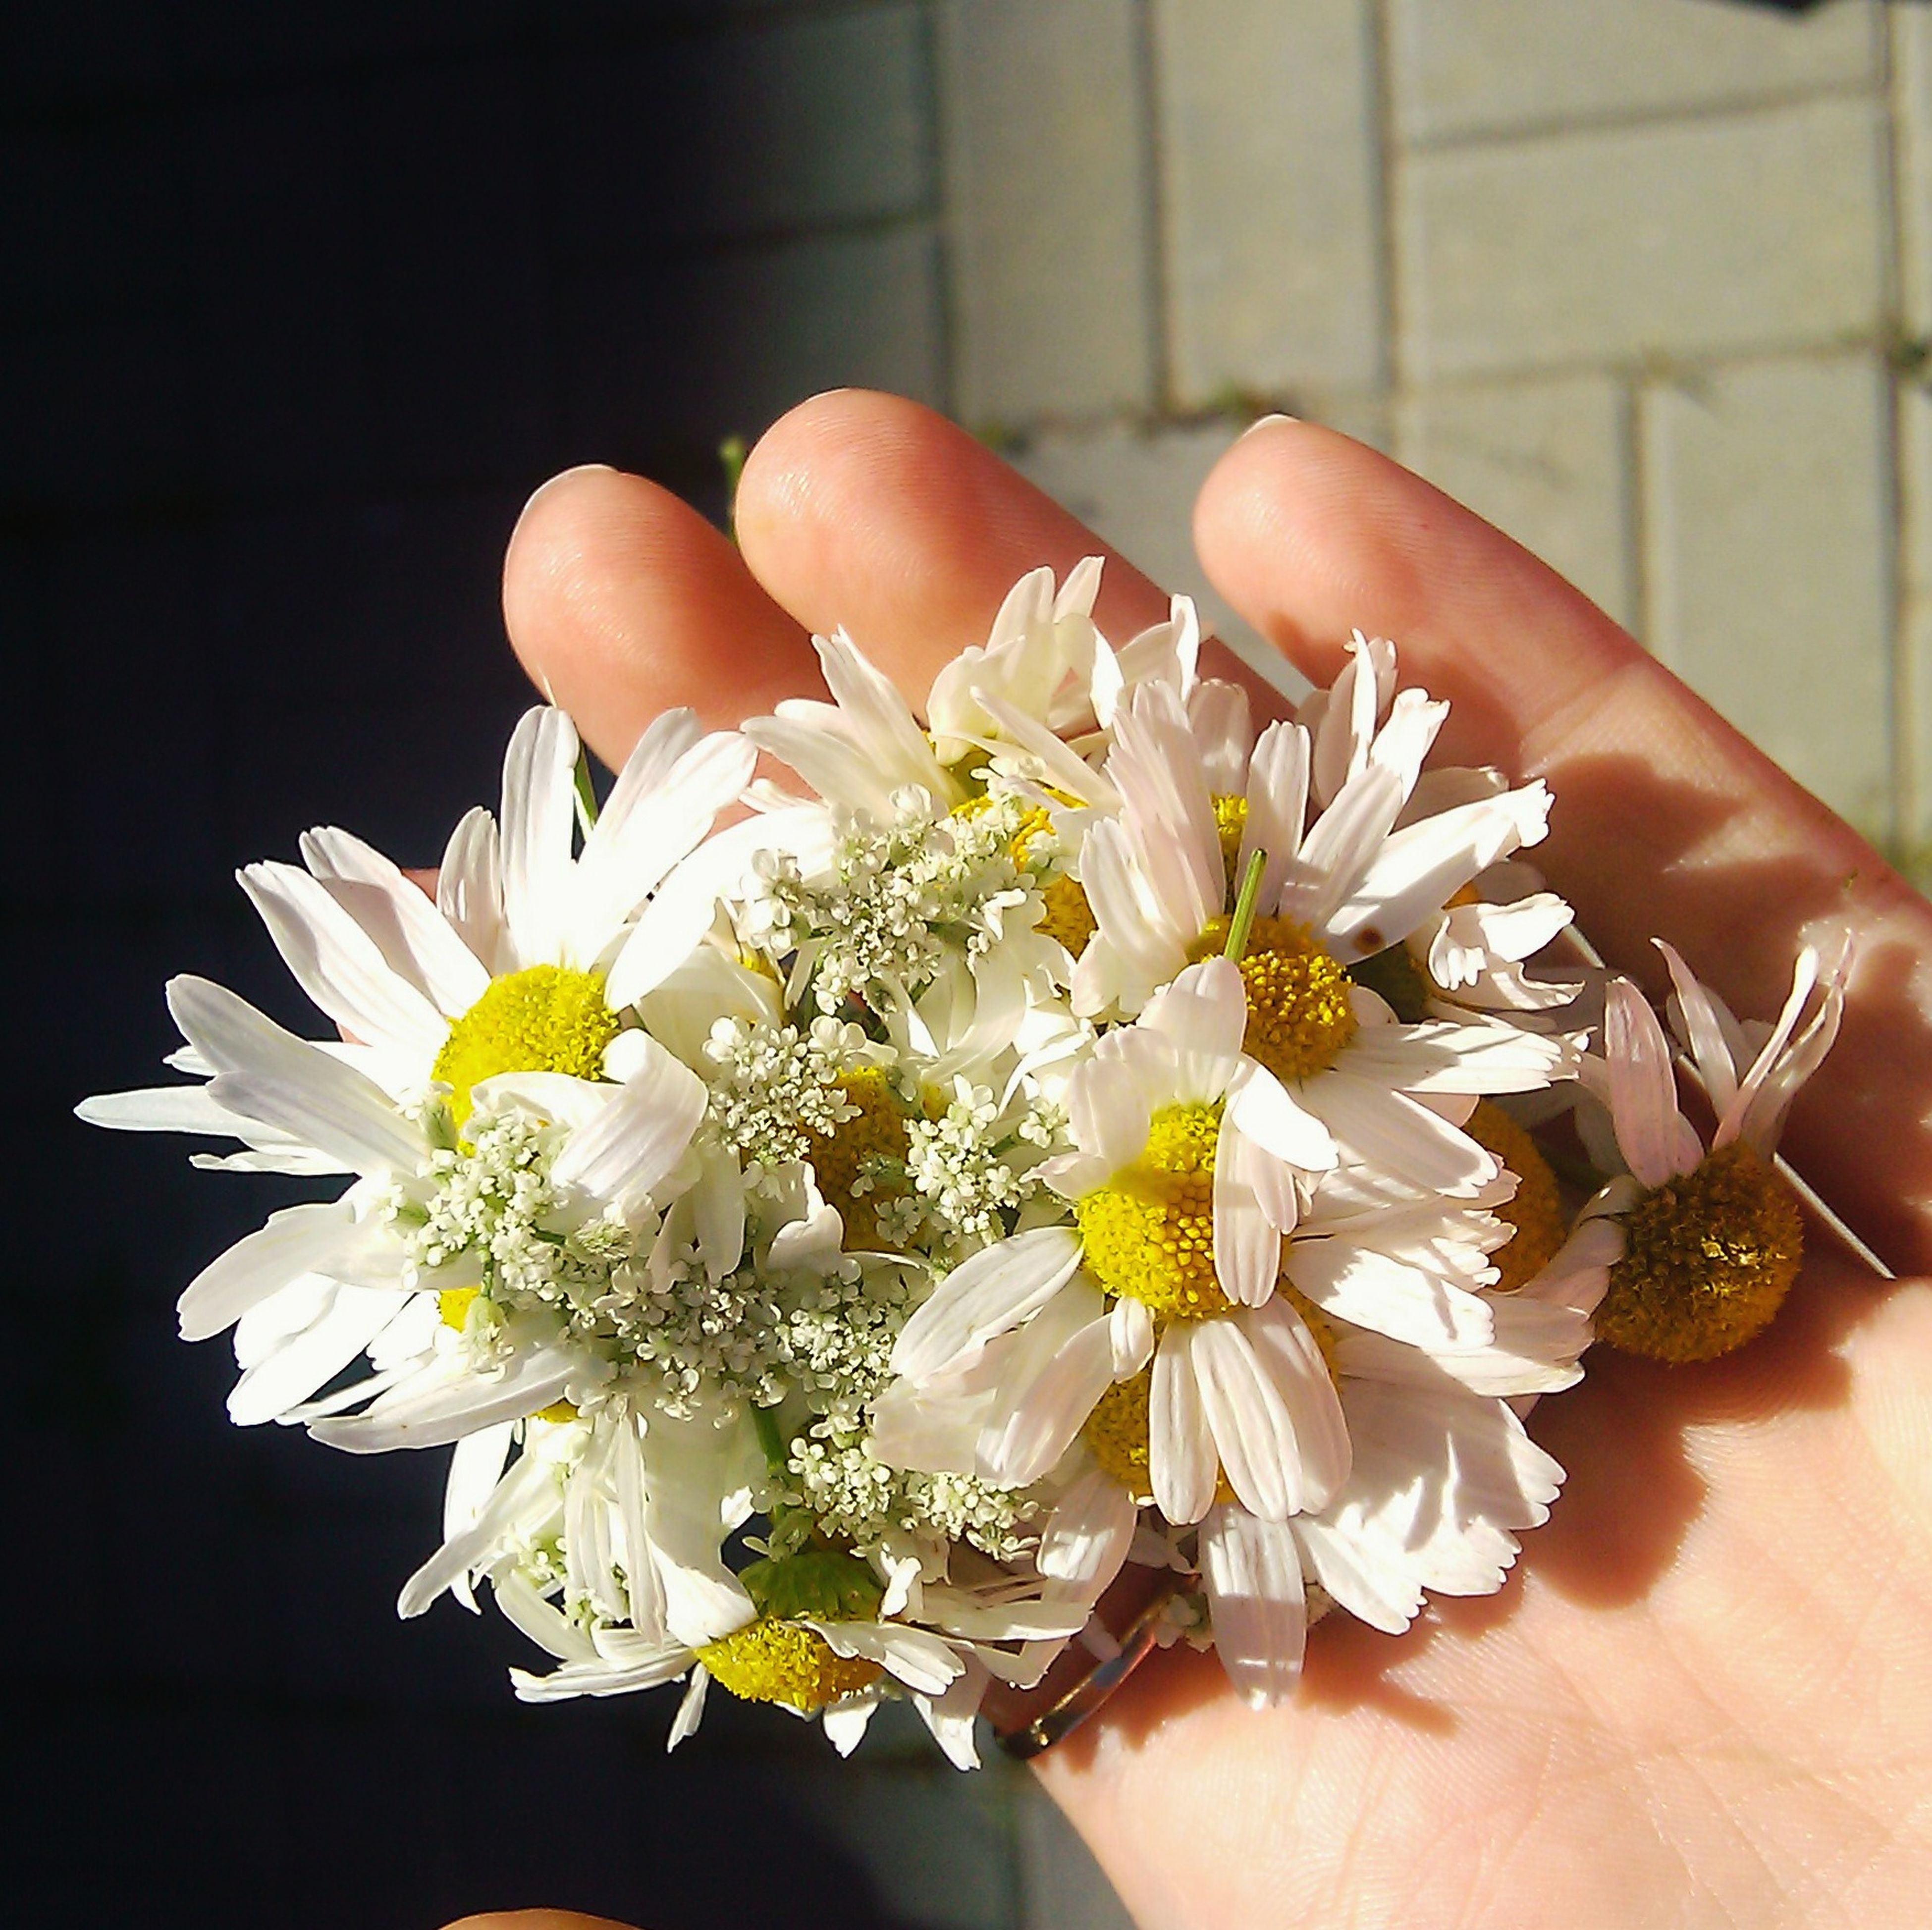 flower, person, holding, white color, petal, fragility, freshness, flower head, part of, human finger, cropped, close-up, indoors, pollen, focus on foreground, unrecognizable person, beauty in nature